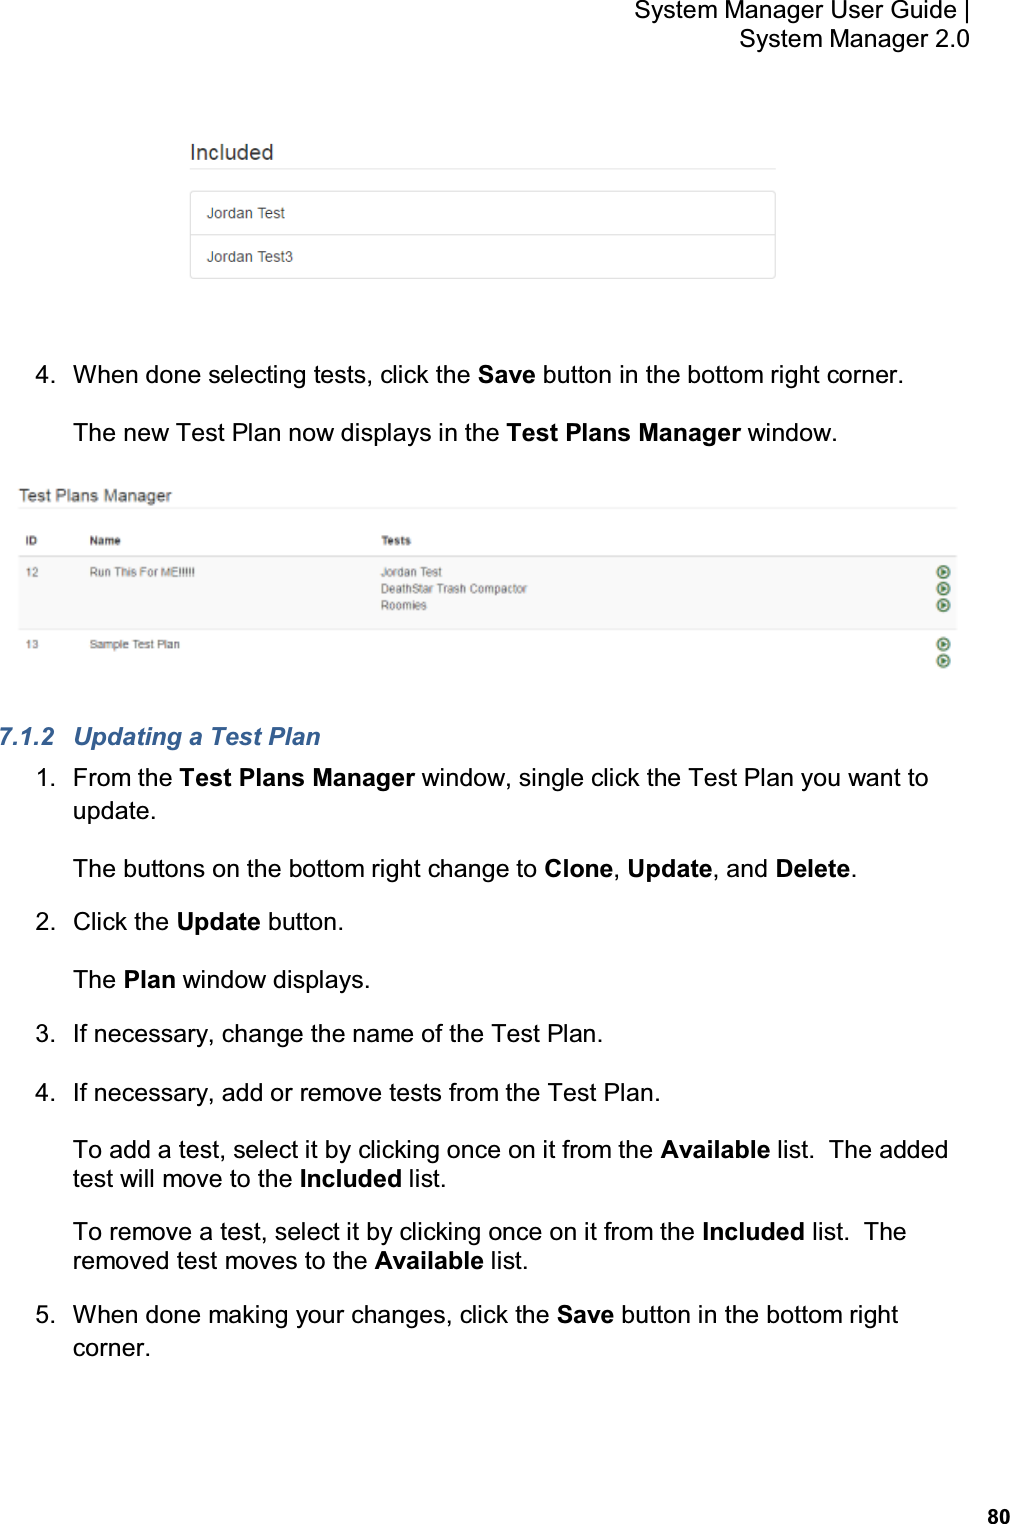 80 System Manager User Guide    System Manager 2.0  4.  When done selecting tests, click the Save button in the bottom right corner. The new Test Plan now displays in the Test Plans Manager window.  7.1.2  Updating a Test Plan 1.  From the Test Plans Manager window, single click the Test Plan you want to update. The buttons on the bottom right change to Clone, Update, and Delete. 2.  Click the Update button. The Plan window displays. 3.  If necessary, change the name of the Test Plan. 4.  If necessary, add or remove tests from the Test Plan. To add a test, select it by clicking once on it from the Available list.  The added test will move to the Included list. To remove a test, select it by clicking once on it from the Included list.  The removed test moves to the Available list. 5.  When done making your changes, click the Save button in the bottom right corner.